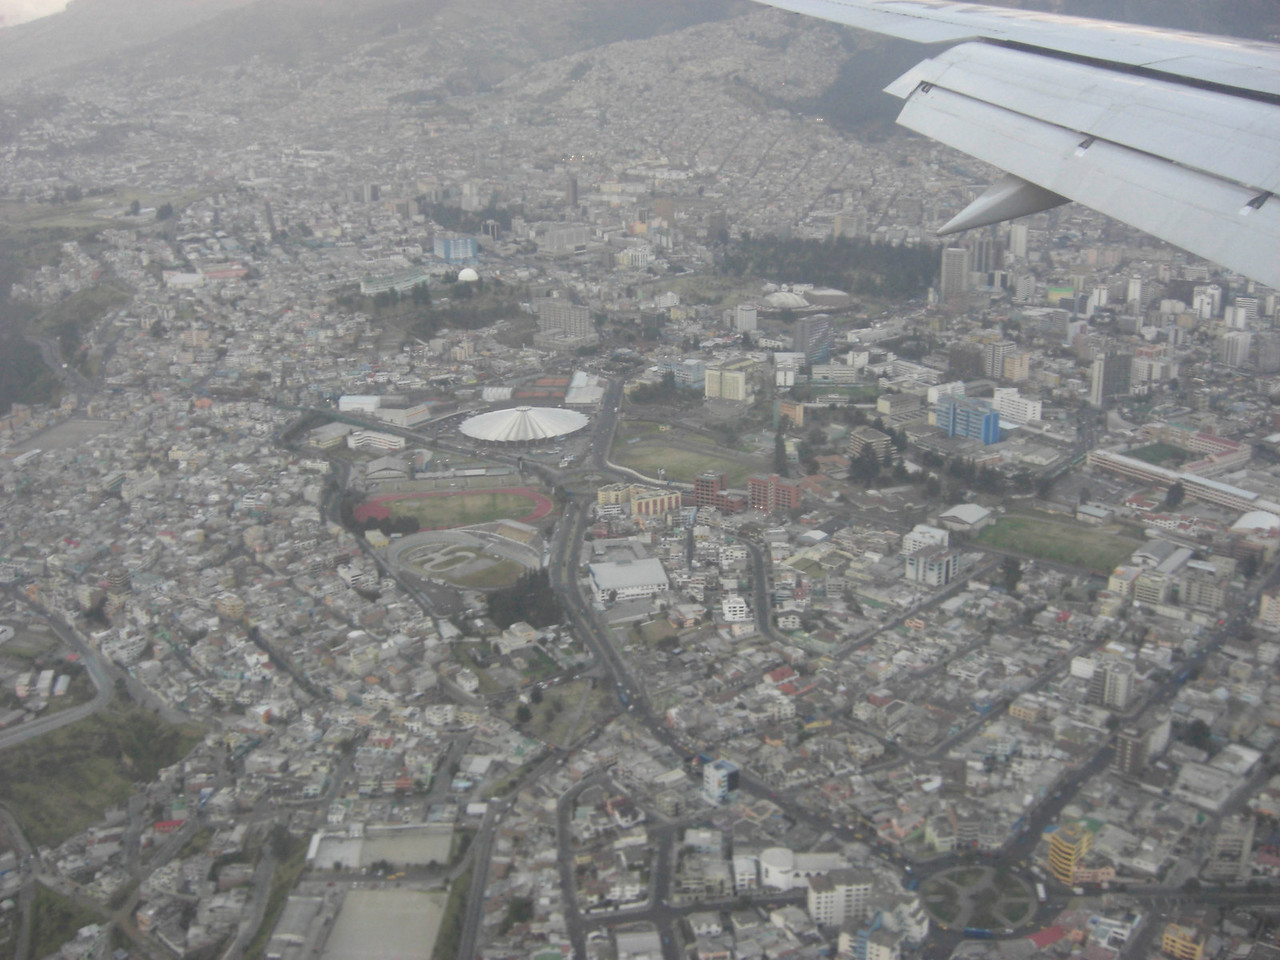 Looking down onto Quito